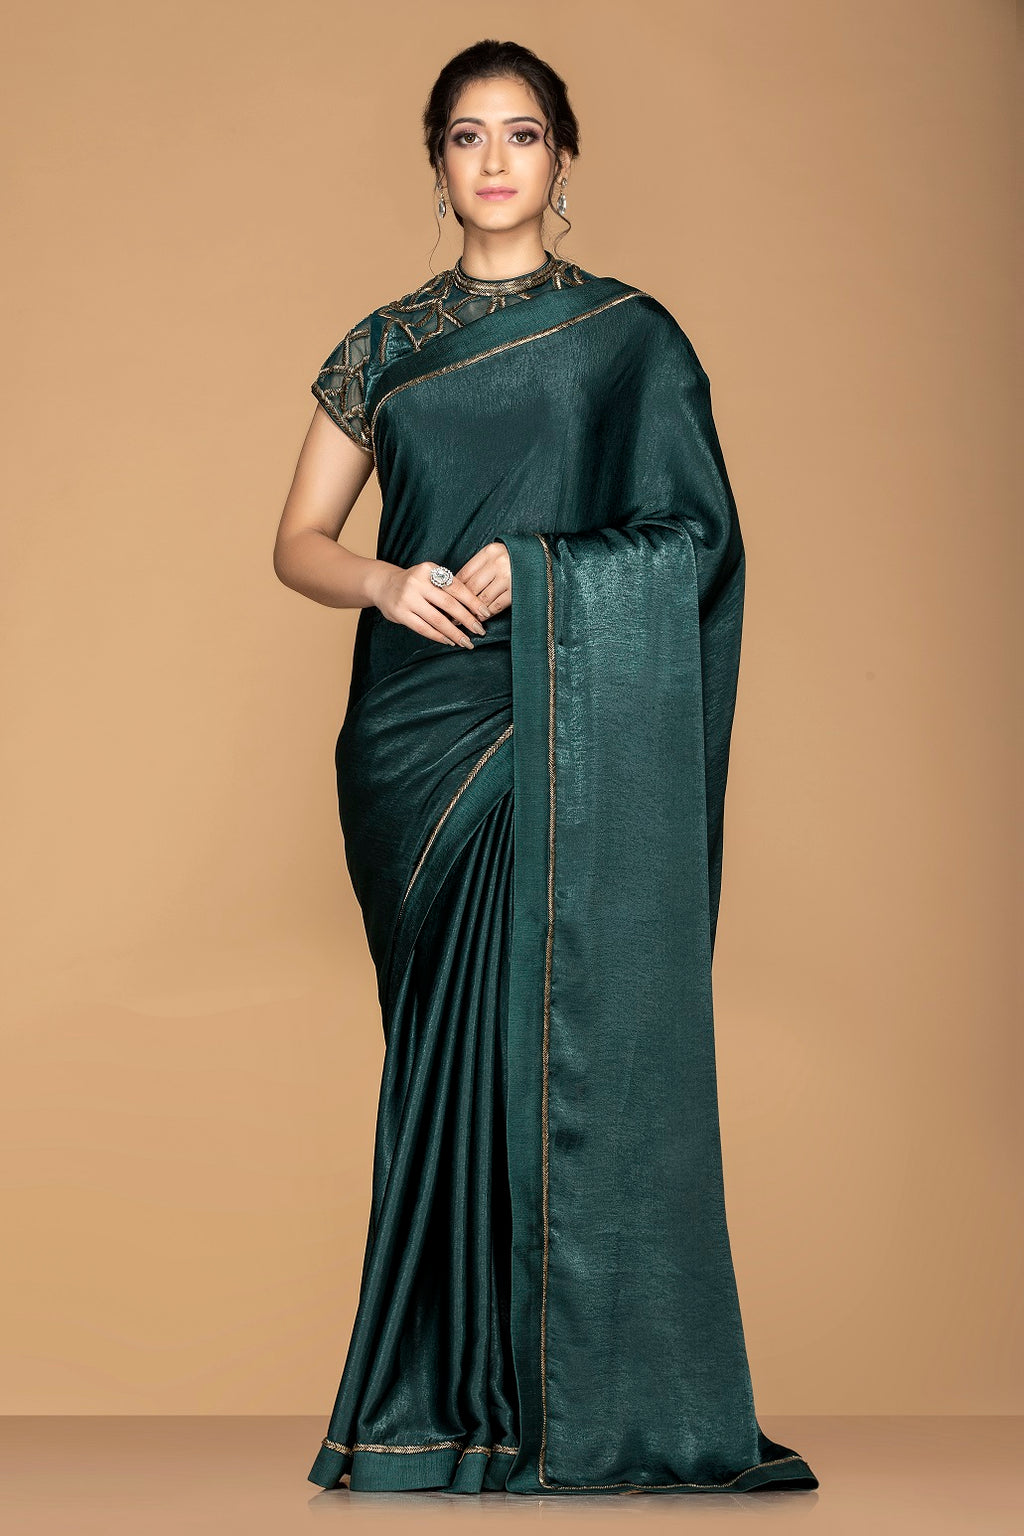 Buy elegant dark green designer saree online in USA with embroidered blouse. Keep your ethnic fashion on point with exquisite designer sarees, partywear sarees, embroidered sarees from Pure Elegance Indian fashion boutique in USA.-full view